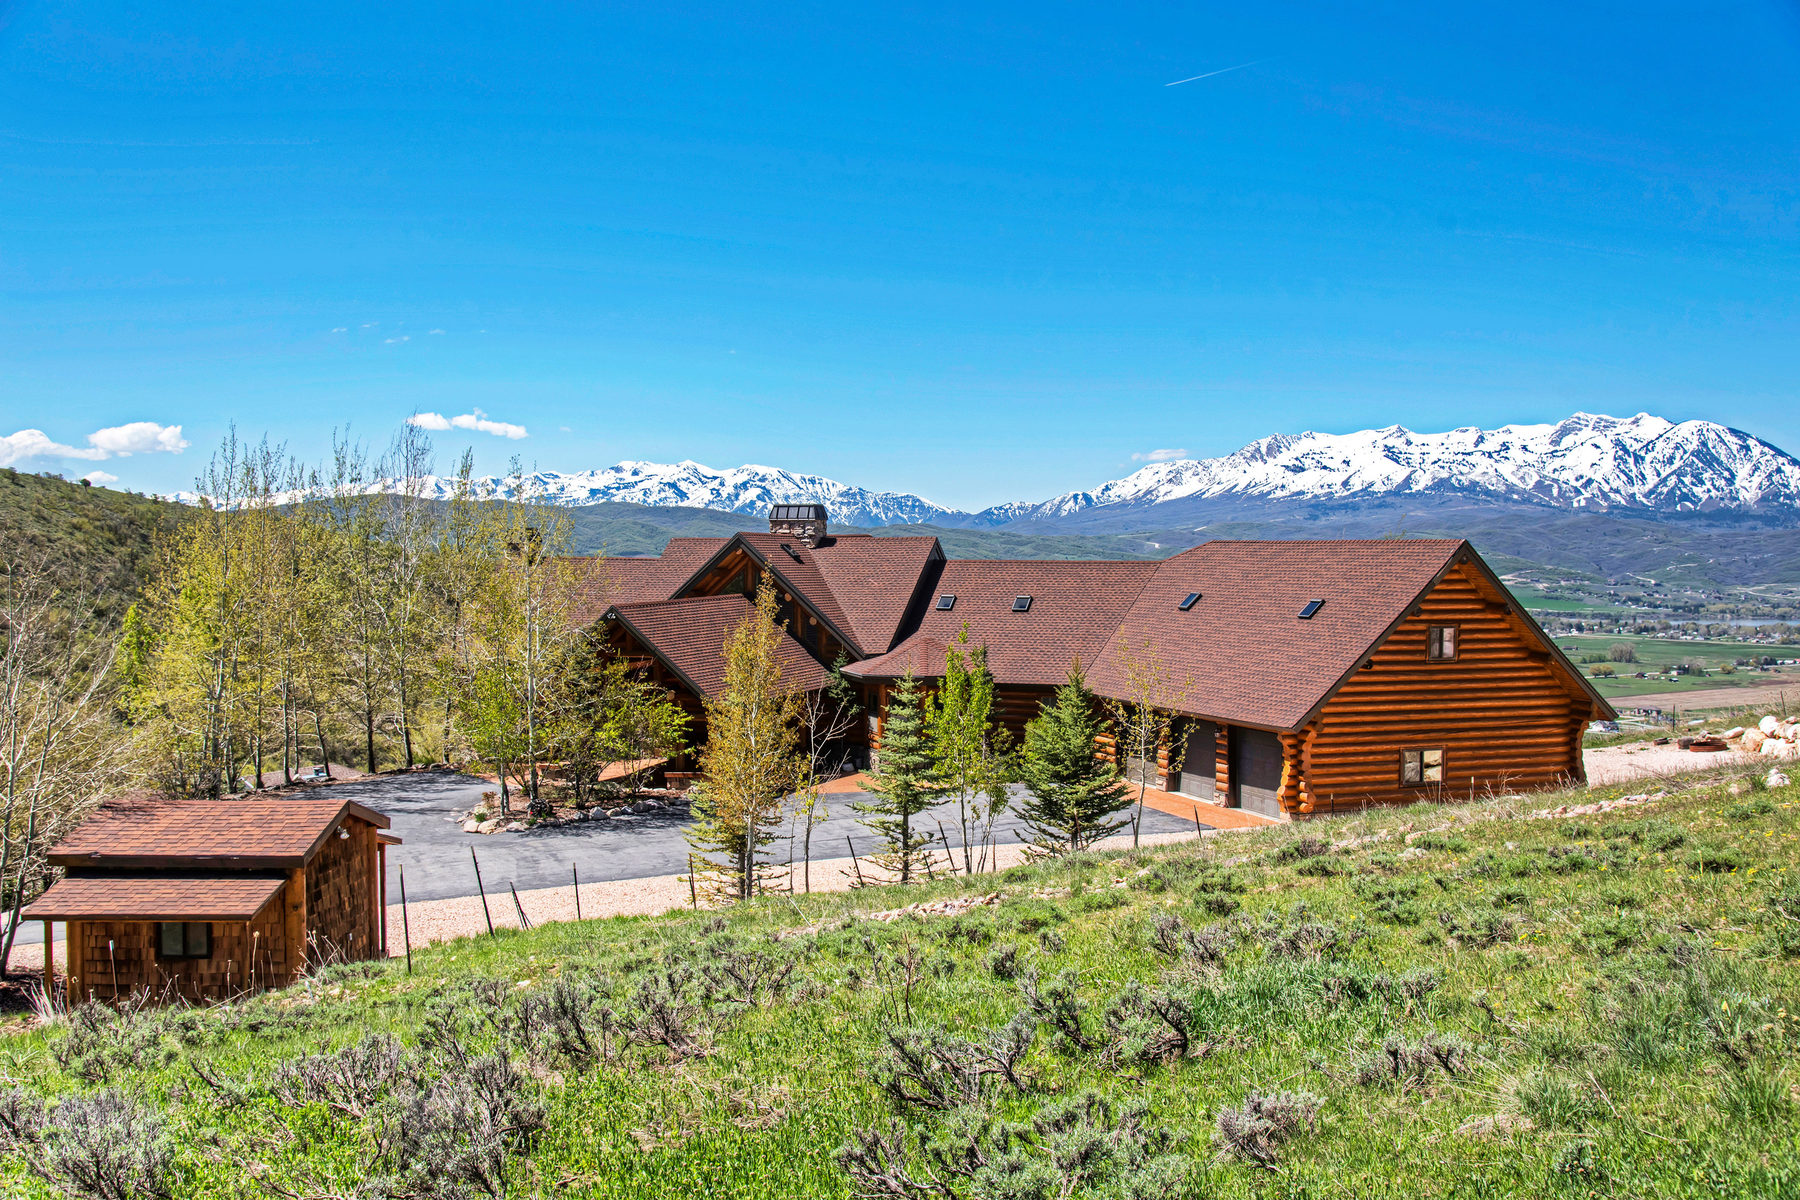 Single Family Home for Sale at Breathtaking views from luxury Neville log home 9542 Kelley Dr Huntsville, Utah, 84317 United States